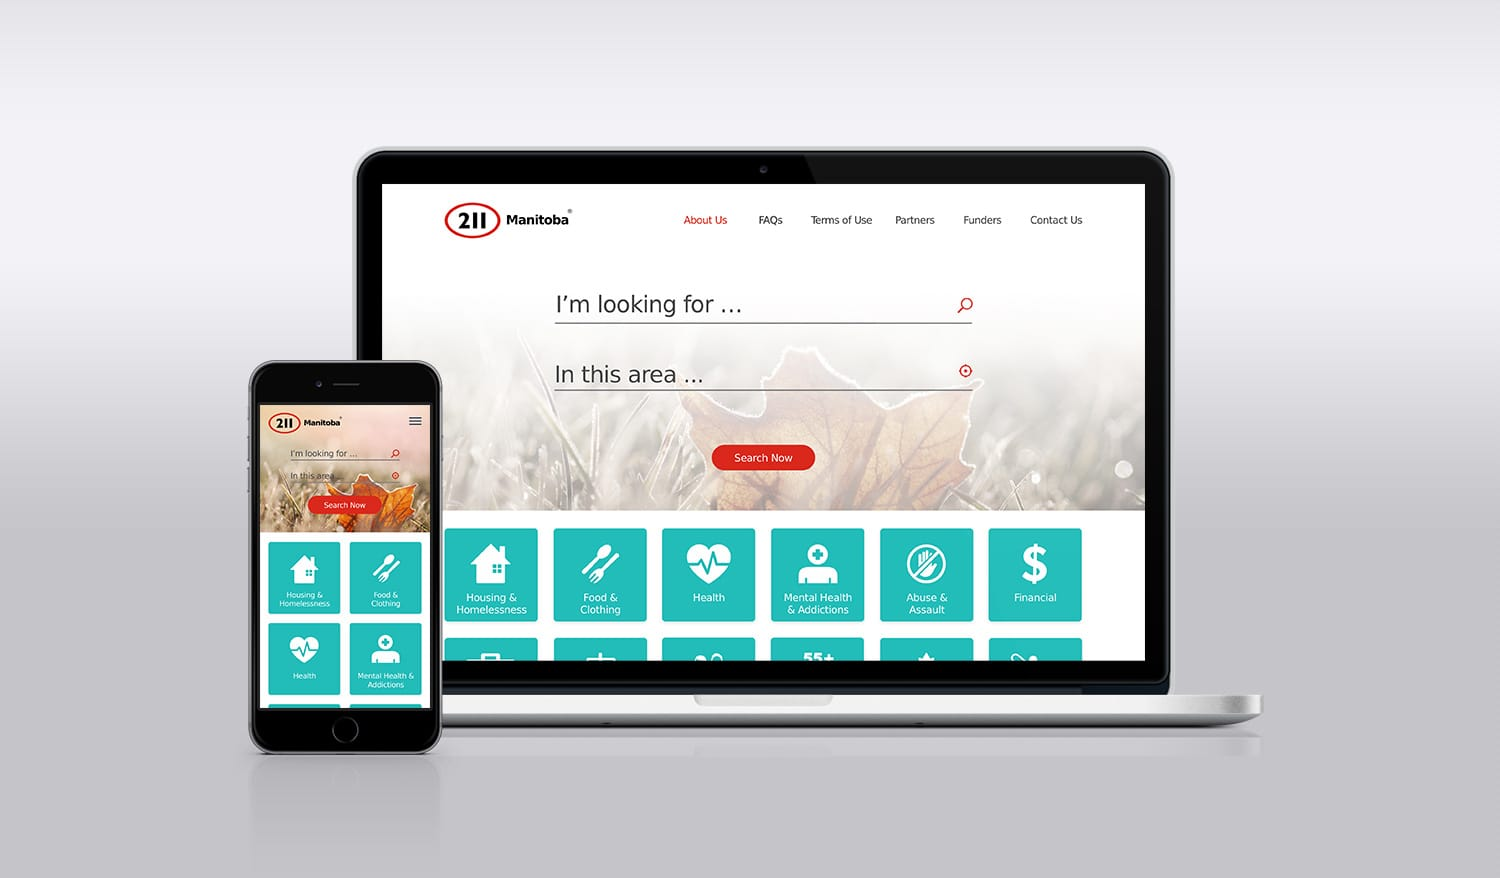 211 Responsive Web App Search